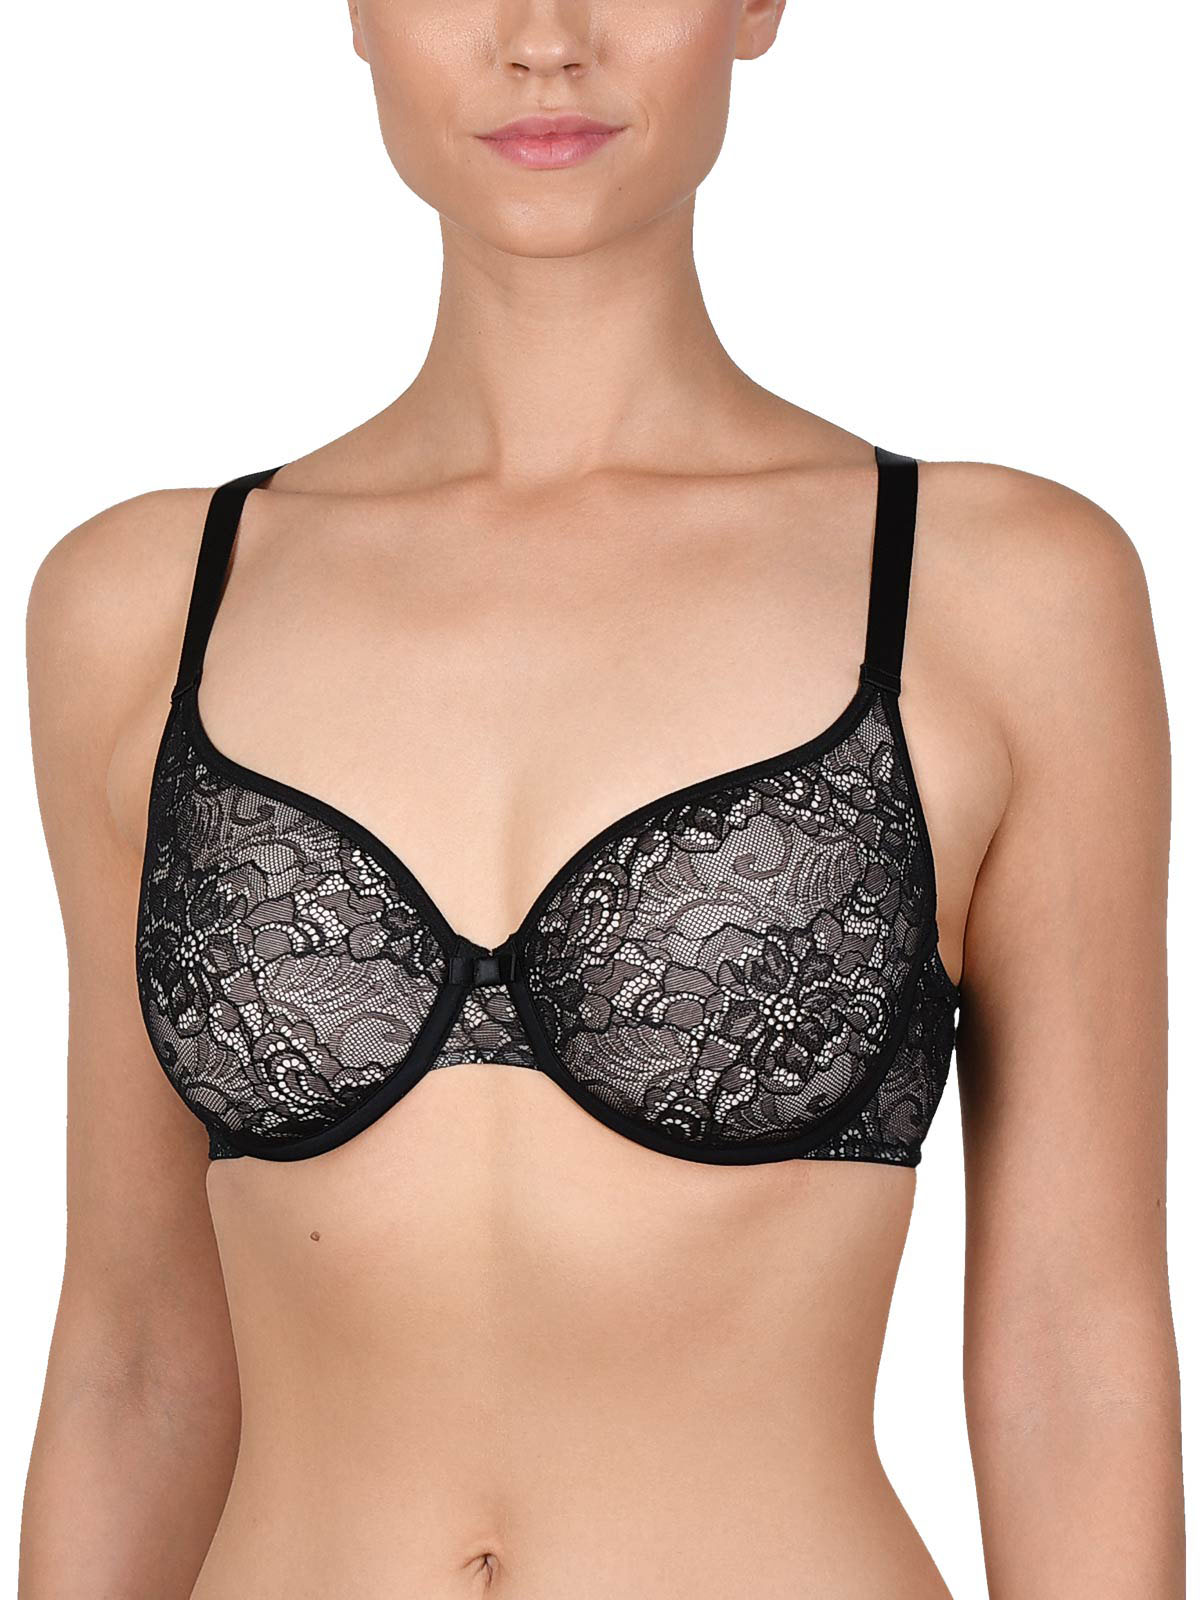 Underwired Spacer Bra Size 34-42 Cup B-E